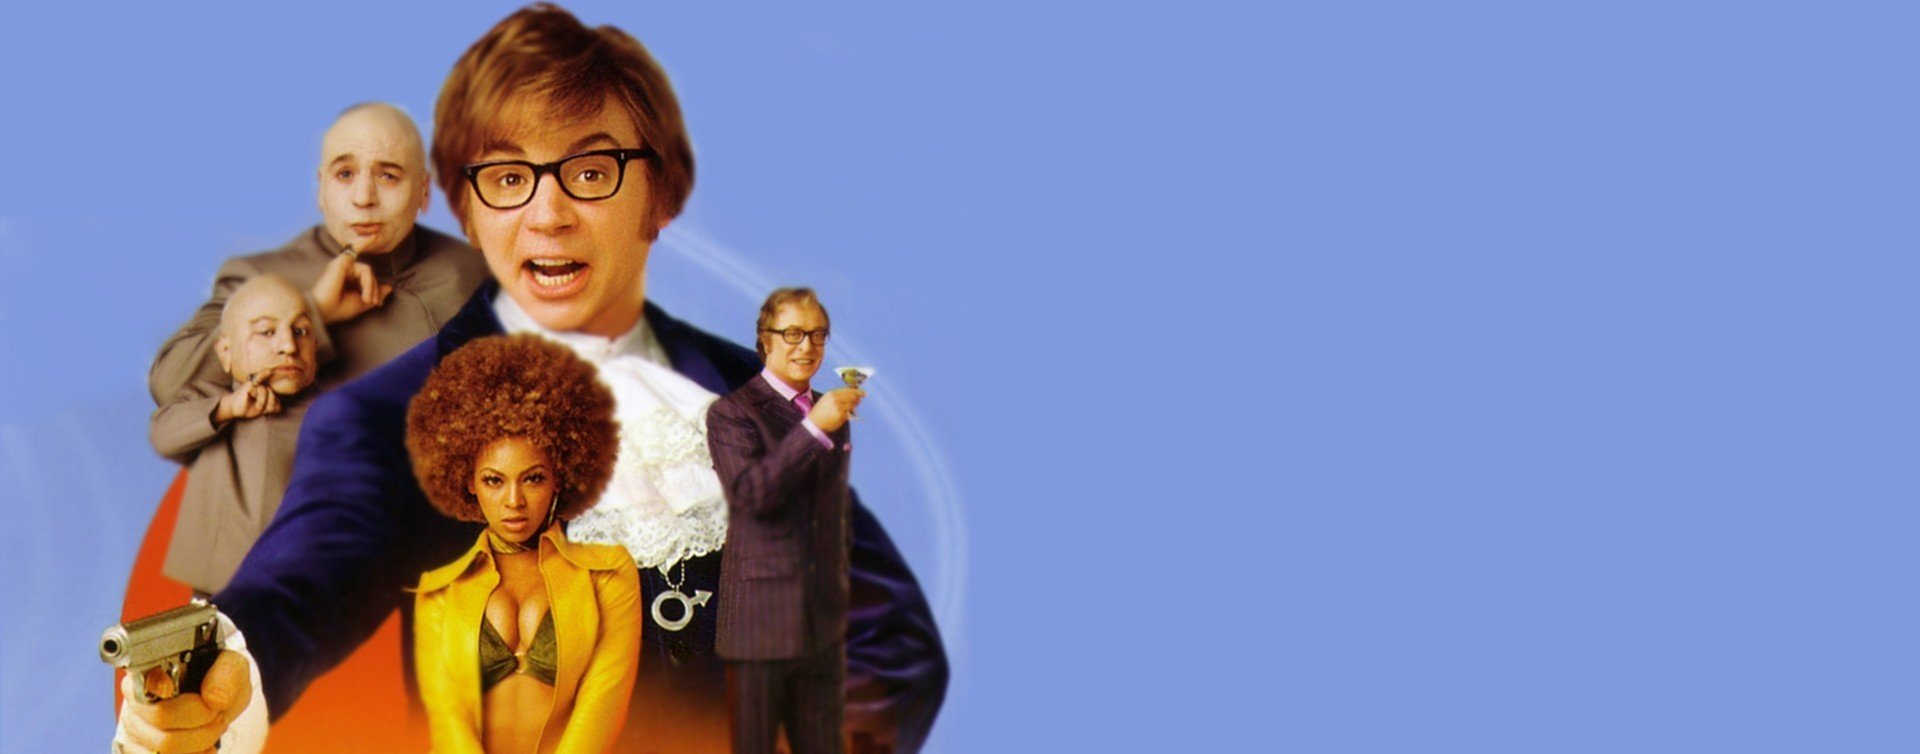 Take 2: Austin Powers in Goldmember feature image